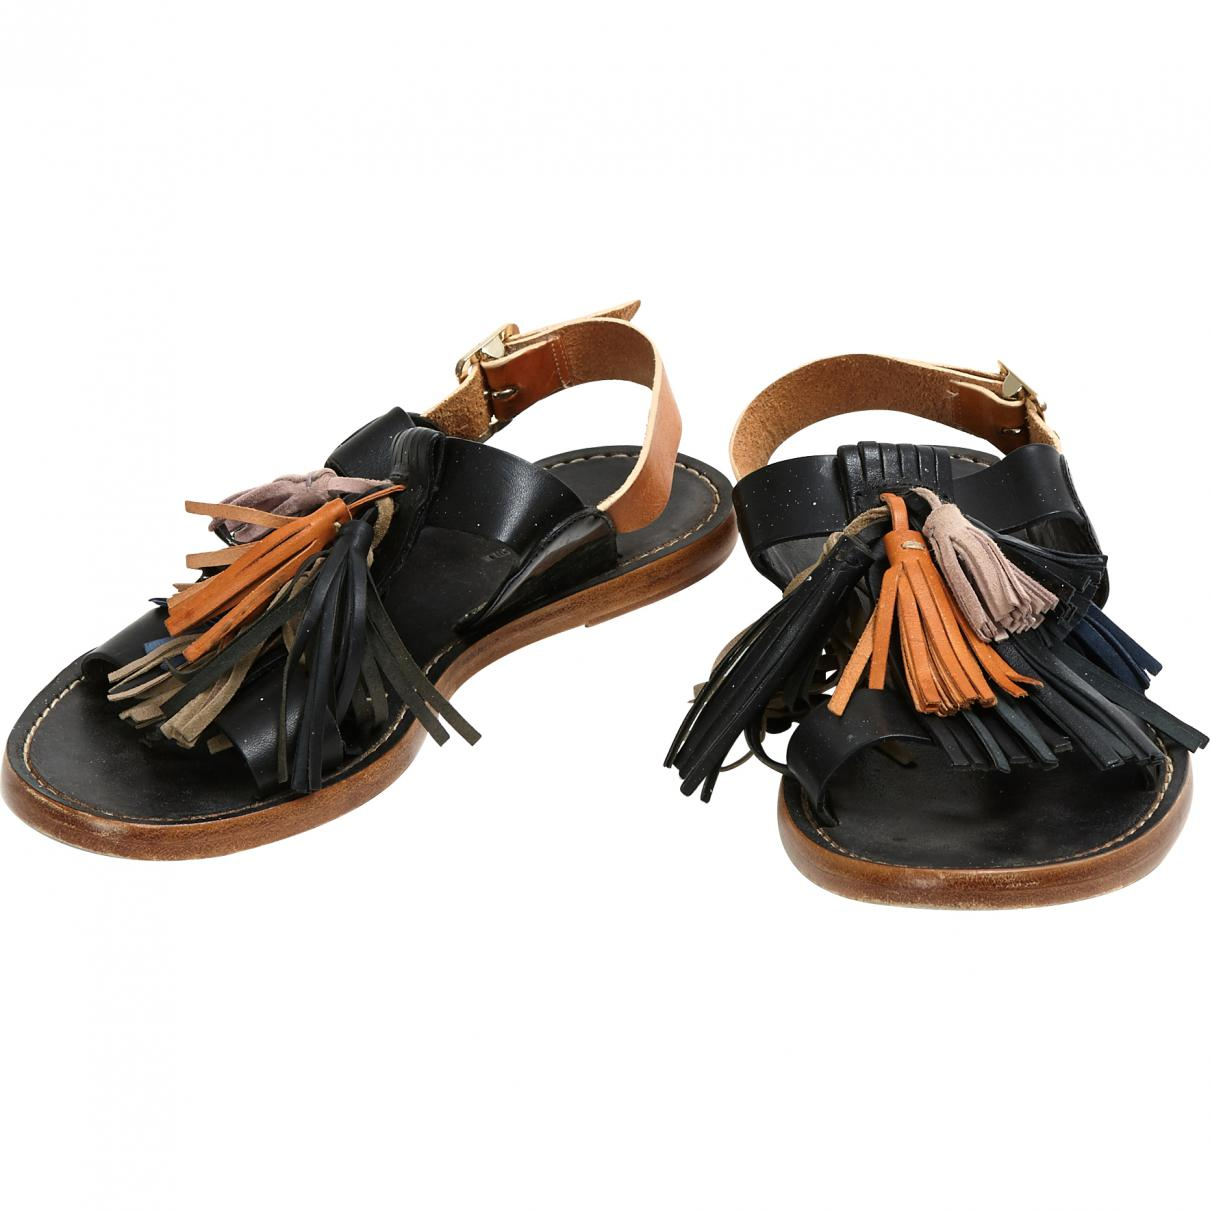 Pre-owned - Leather sandals Isabel Marant zHbMIJ